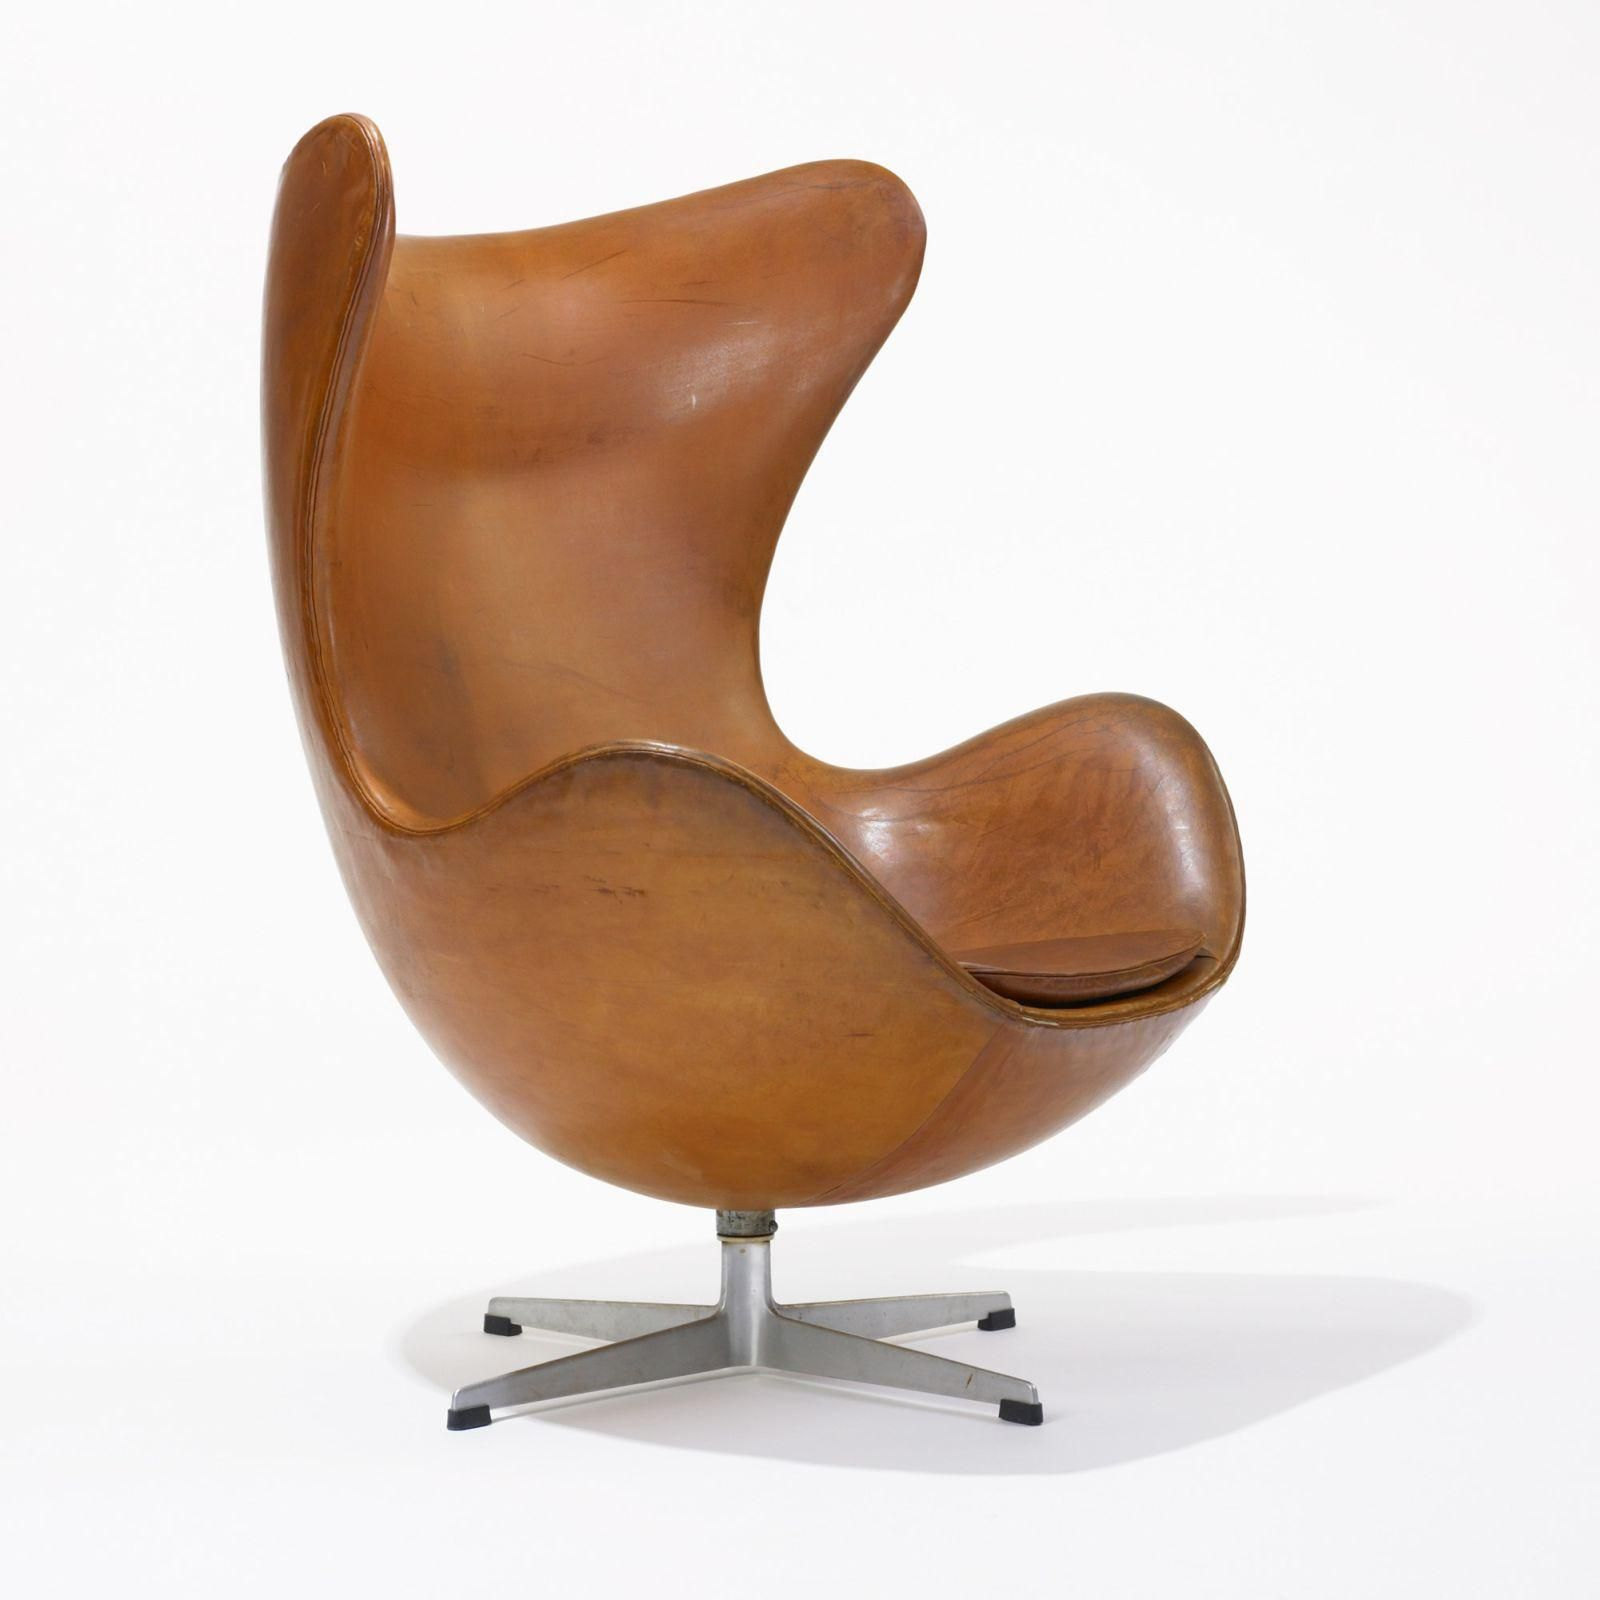 1000 images about chairs lounge chairs on pinterest lounge chairs futuristic furniture and egg chair arne jacobsen furniture